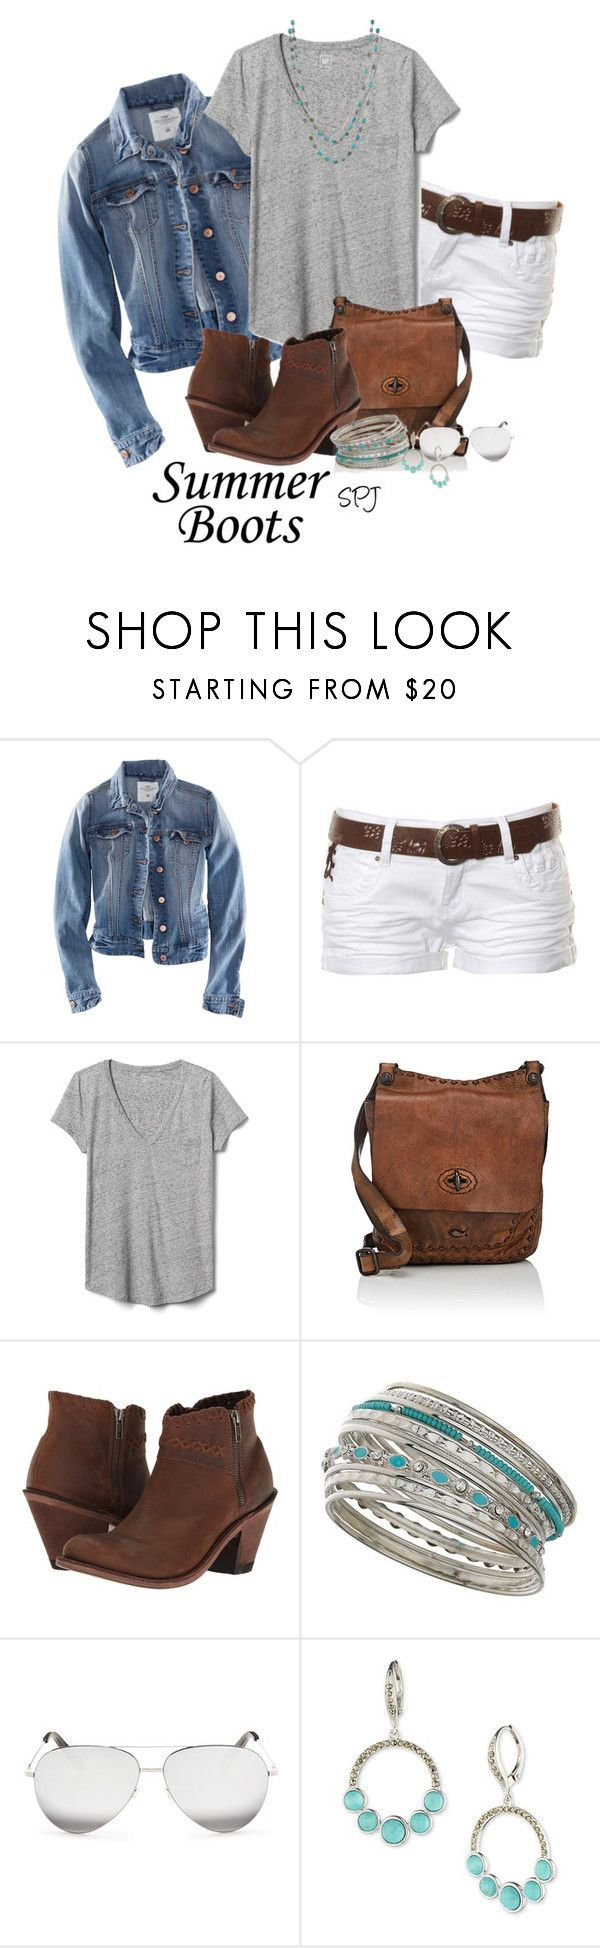 """Casual Summer Boots"" by s-p-j ❤ liked on Polyvore featuring H&M, Stolen, Gap, Campomaggi, Old West, Miss Selfridge, Victoria Beckham, Judith Jack and John Hardy"